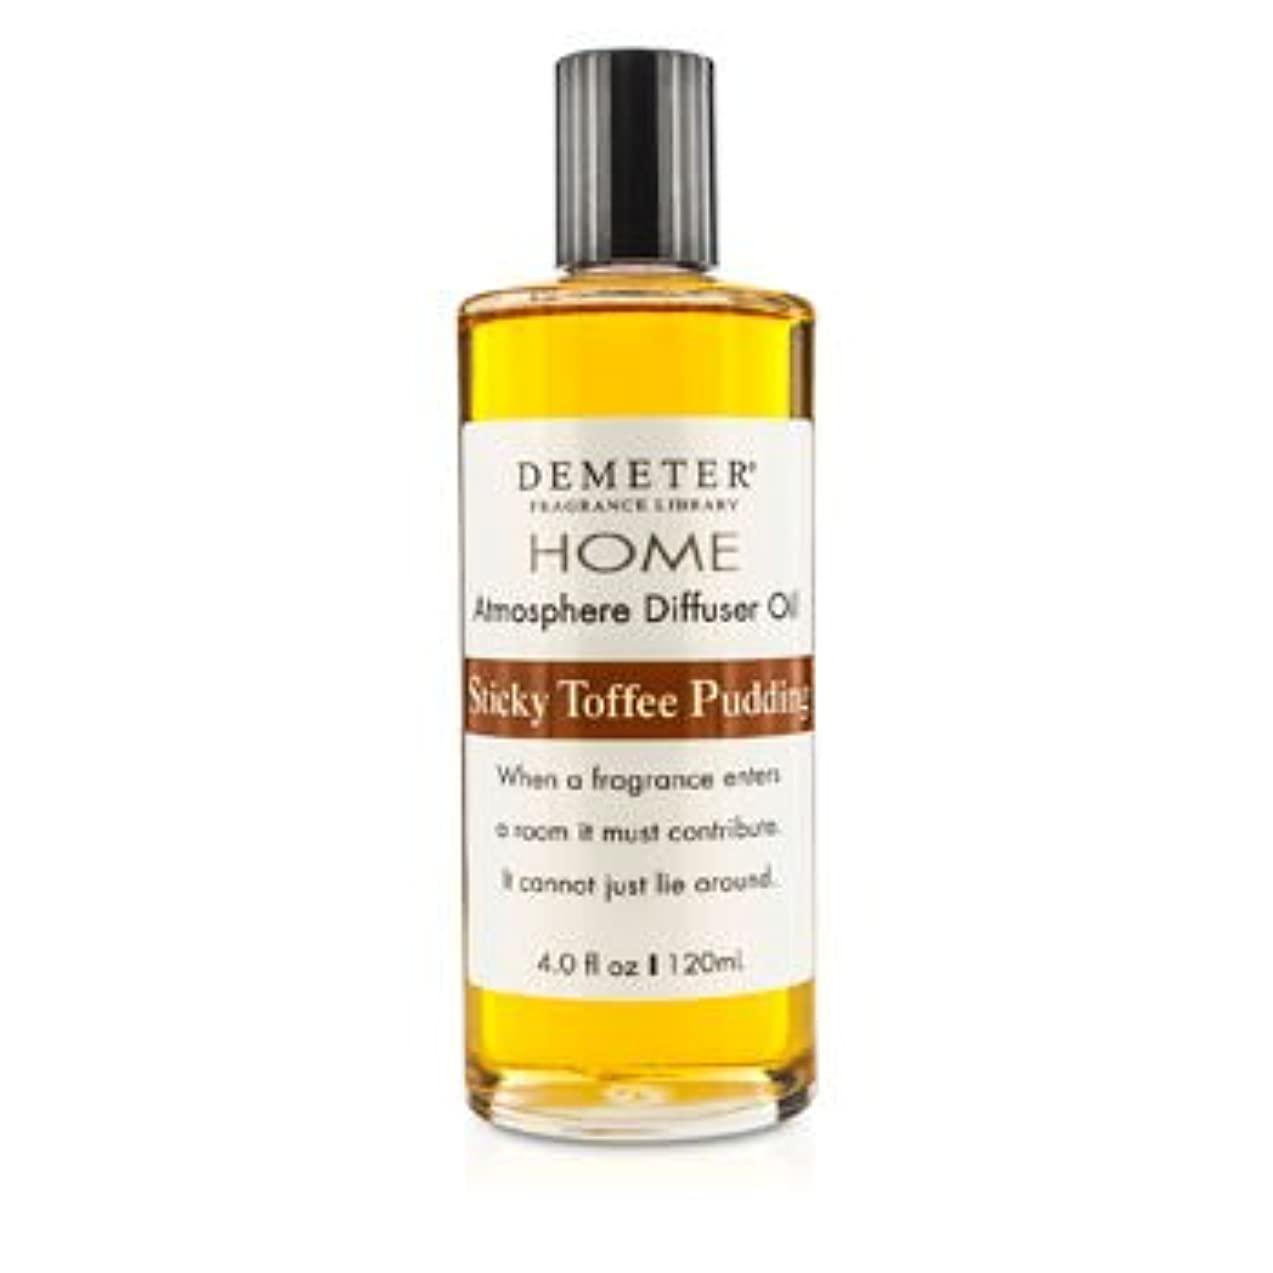 パッチアーティスト地球[Demeter] Atmosphere Diffuser Oil - Sticky Toffee Pudding 120ml/4oz